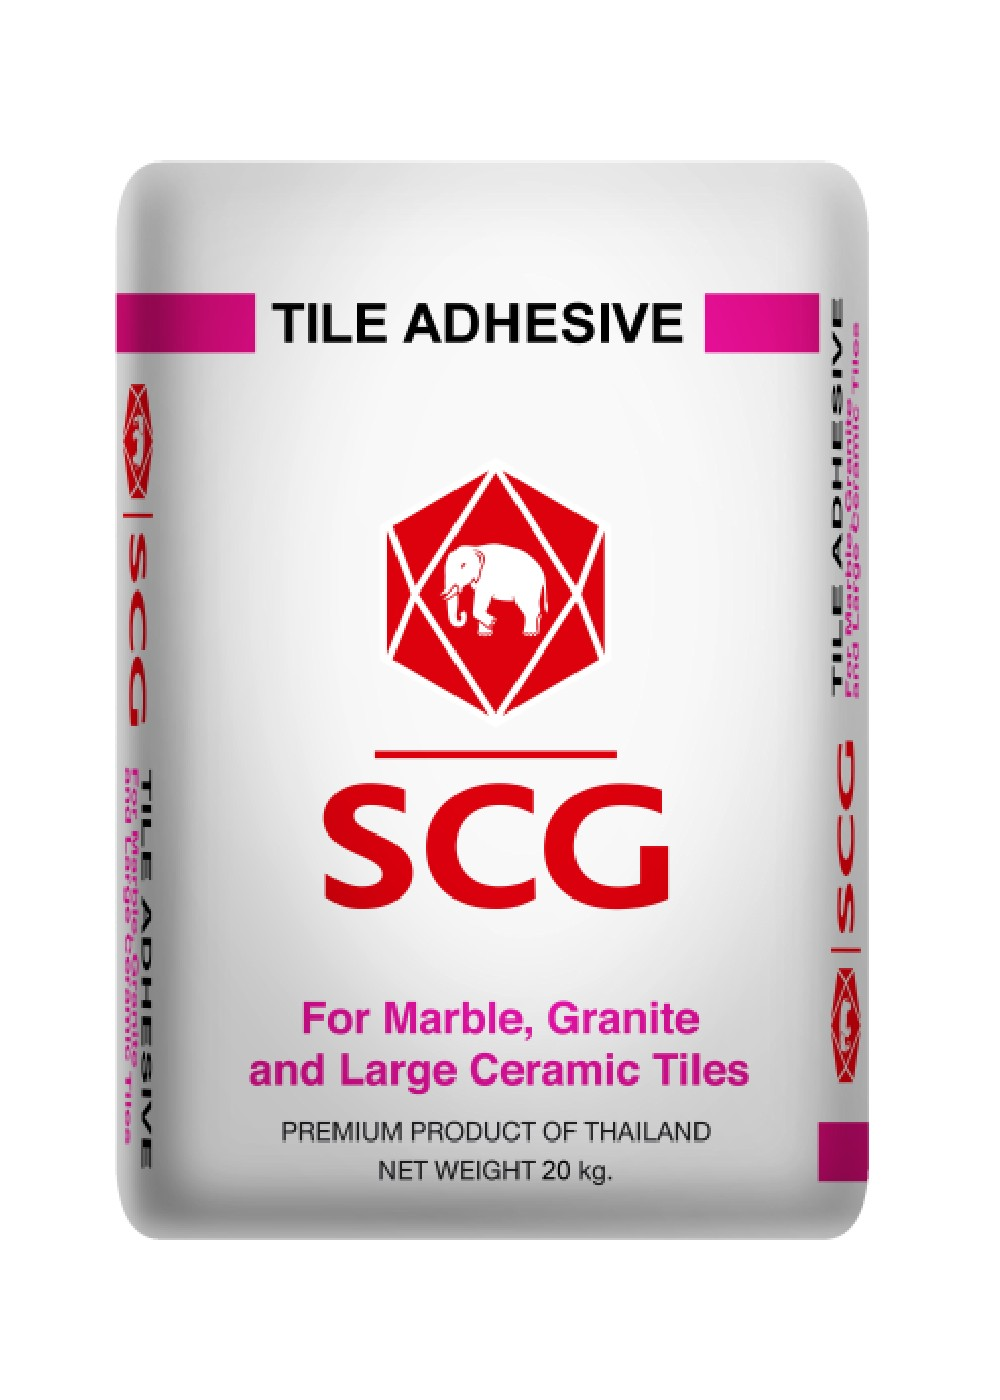 SCG Tile Adhesive for Marble Granite and Large Ceramic Tiles